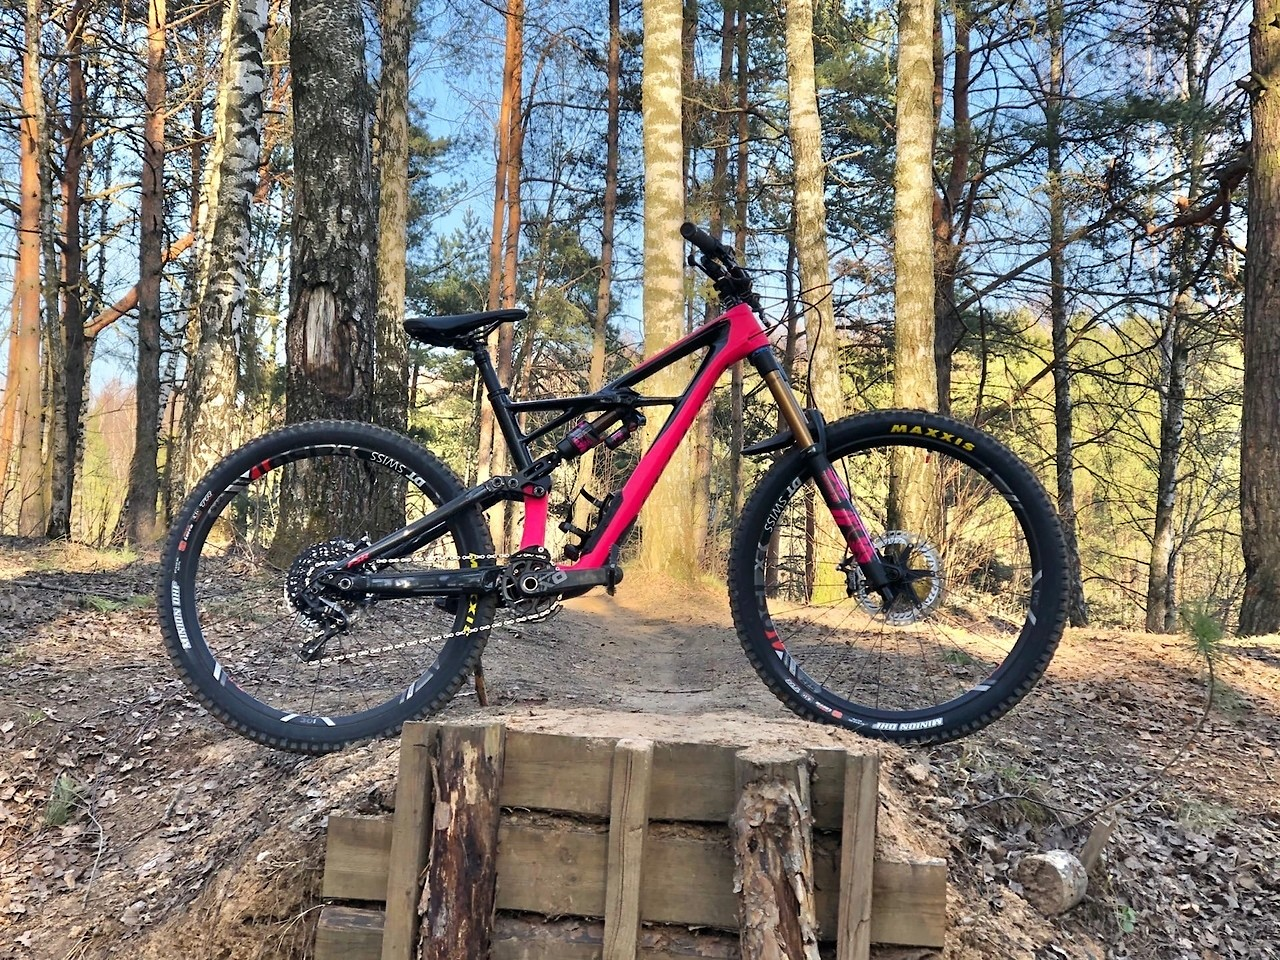 Lacy's Specialized